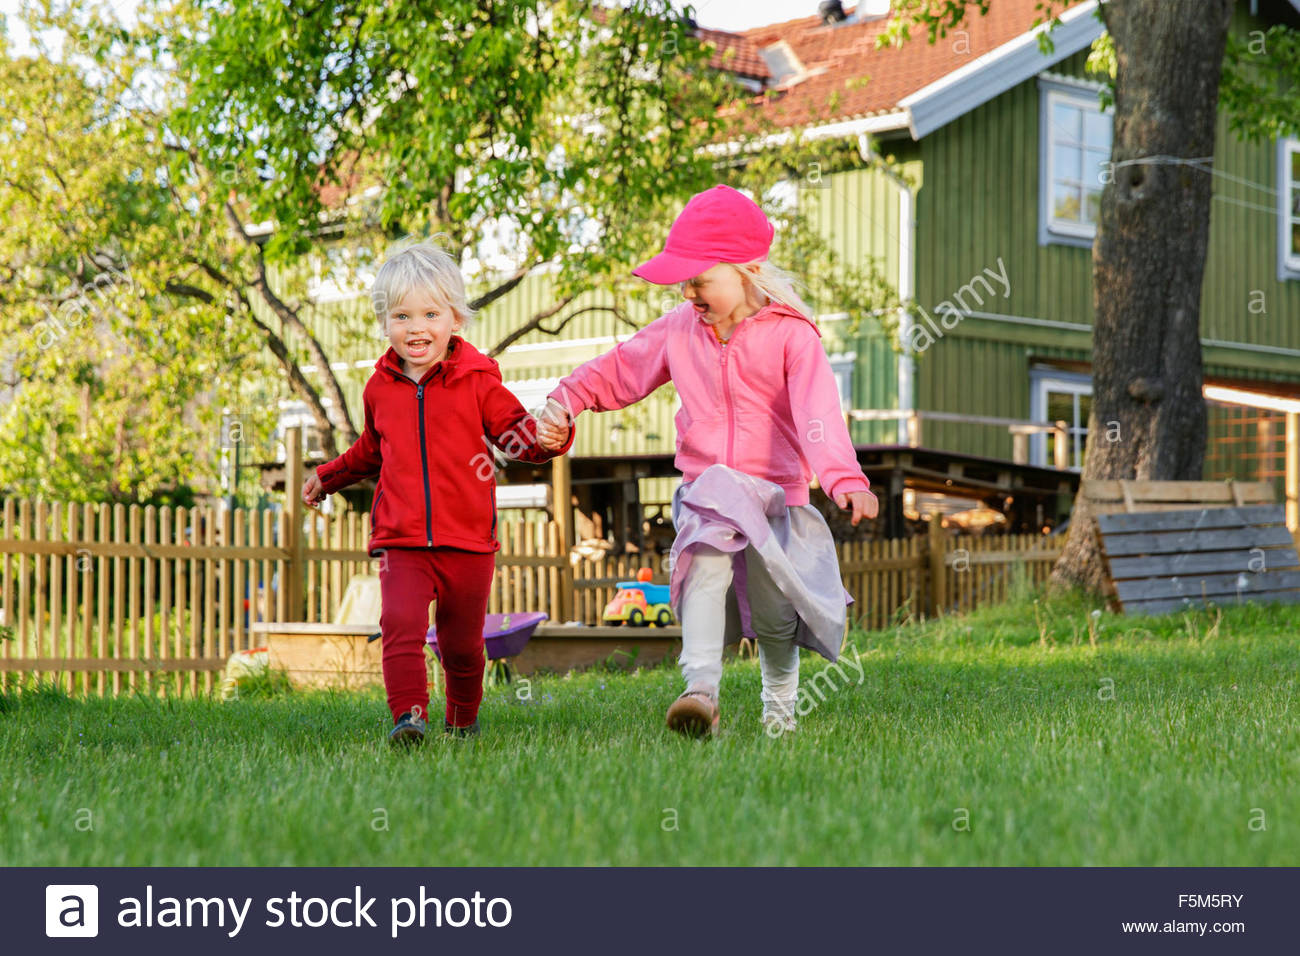 Sweden, Sodermanland, Jarna, Children (2-3, 4-5) playing on front yard - Stock Image